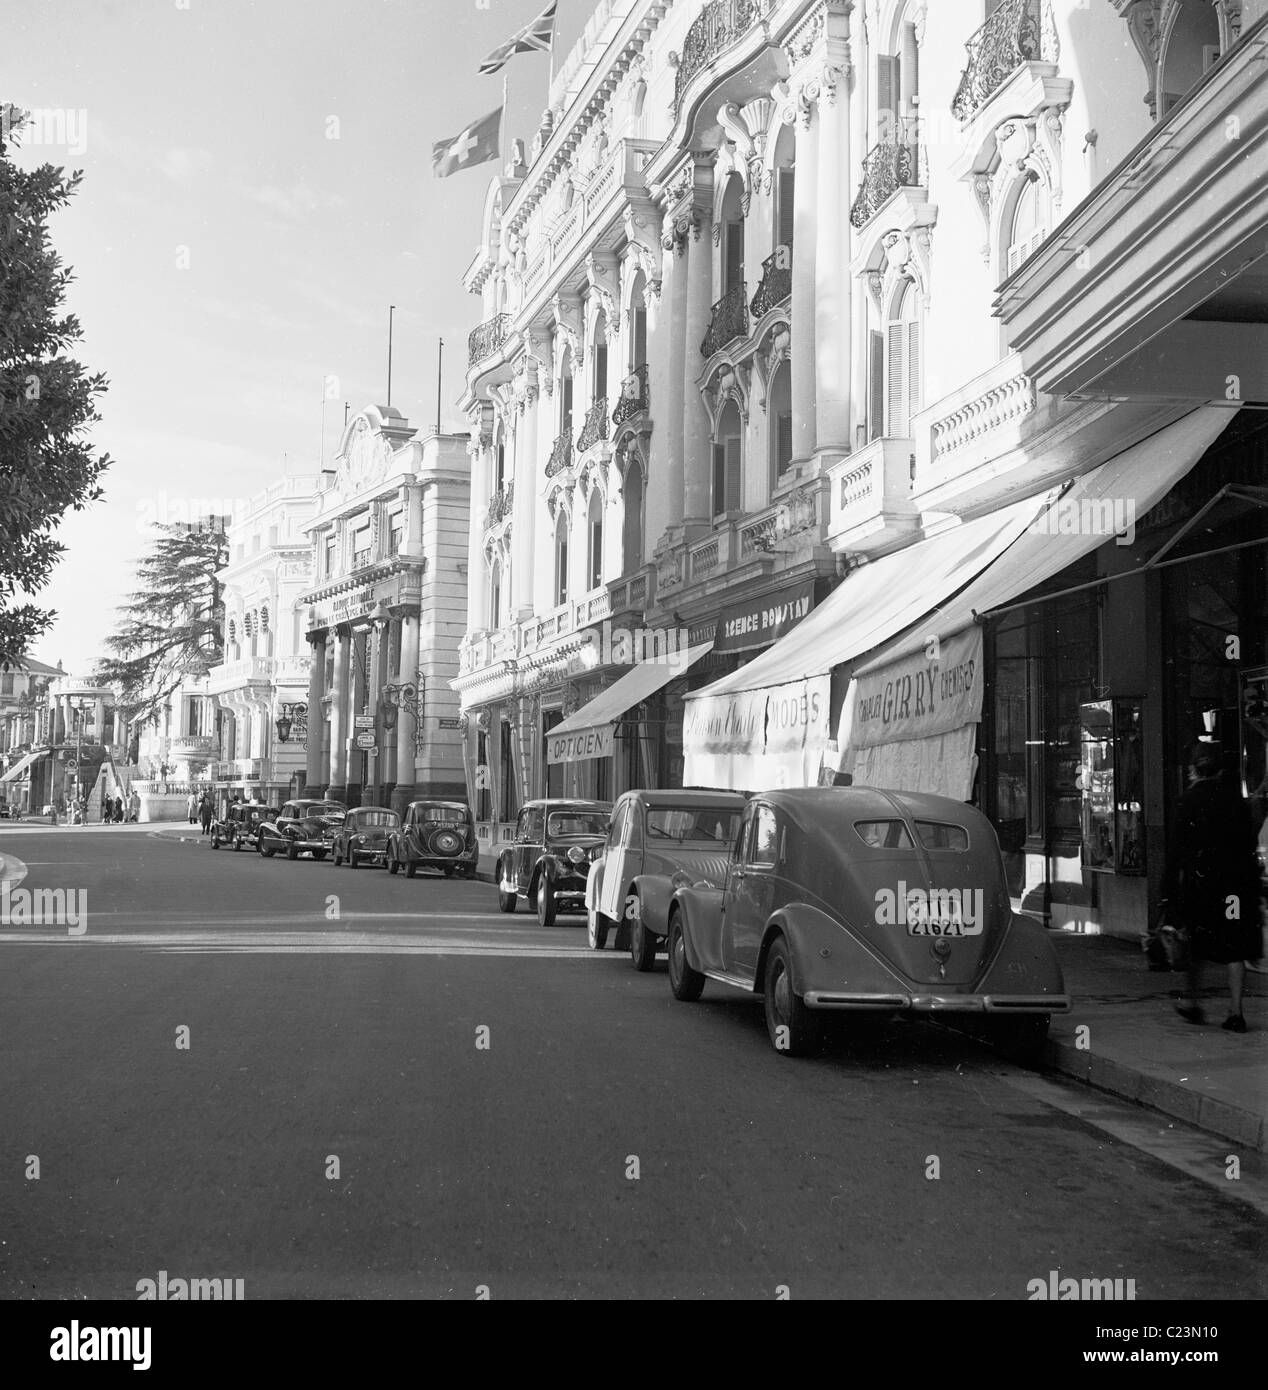 1950s, France.  Cars parked on Avenue des Moulins, Monte Carlo, in this historical photograph by J Allan Cash. - Stock Image